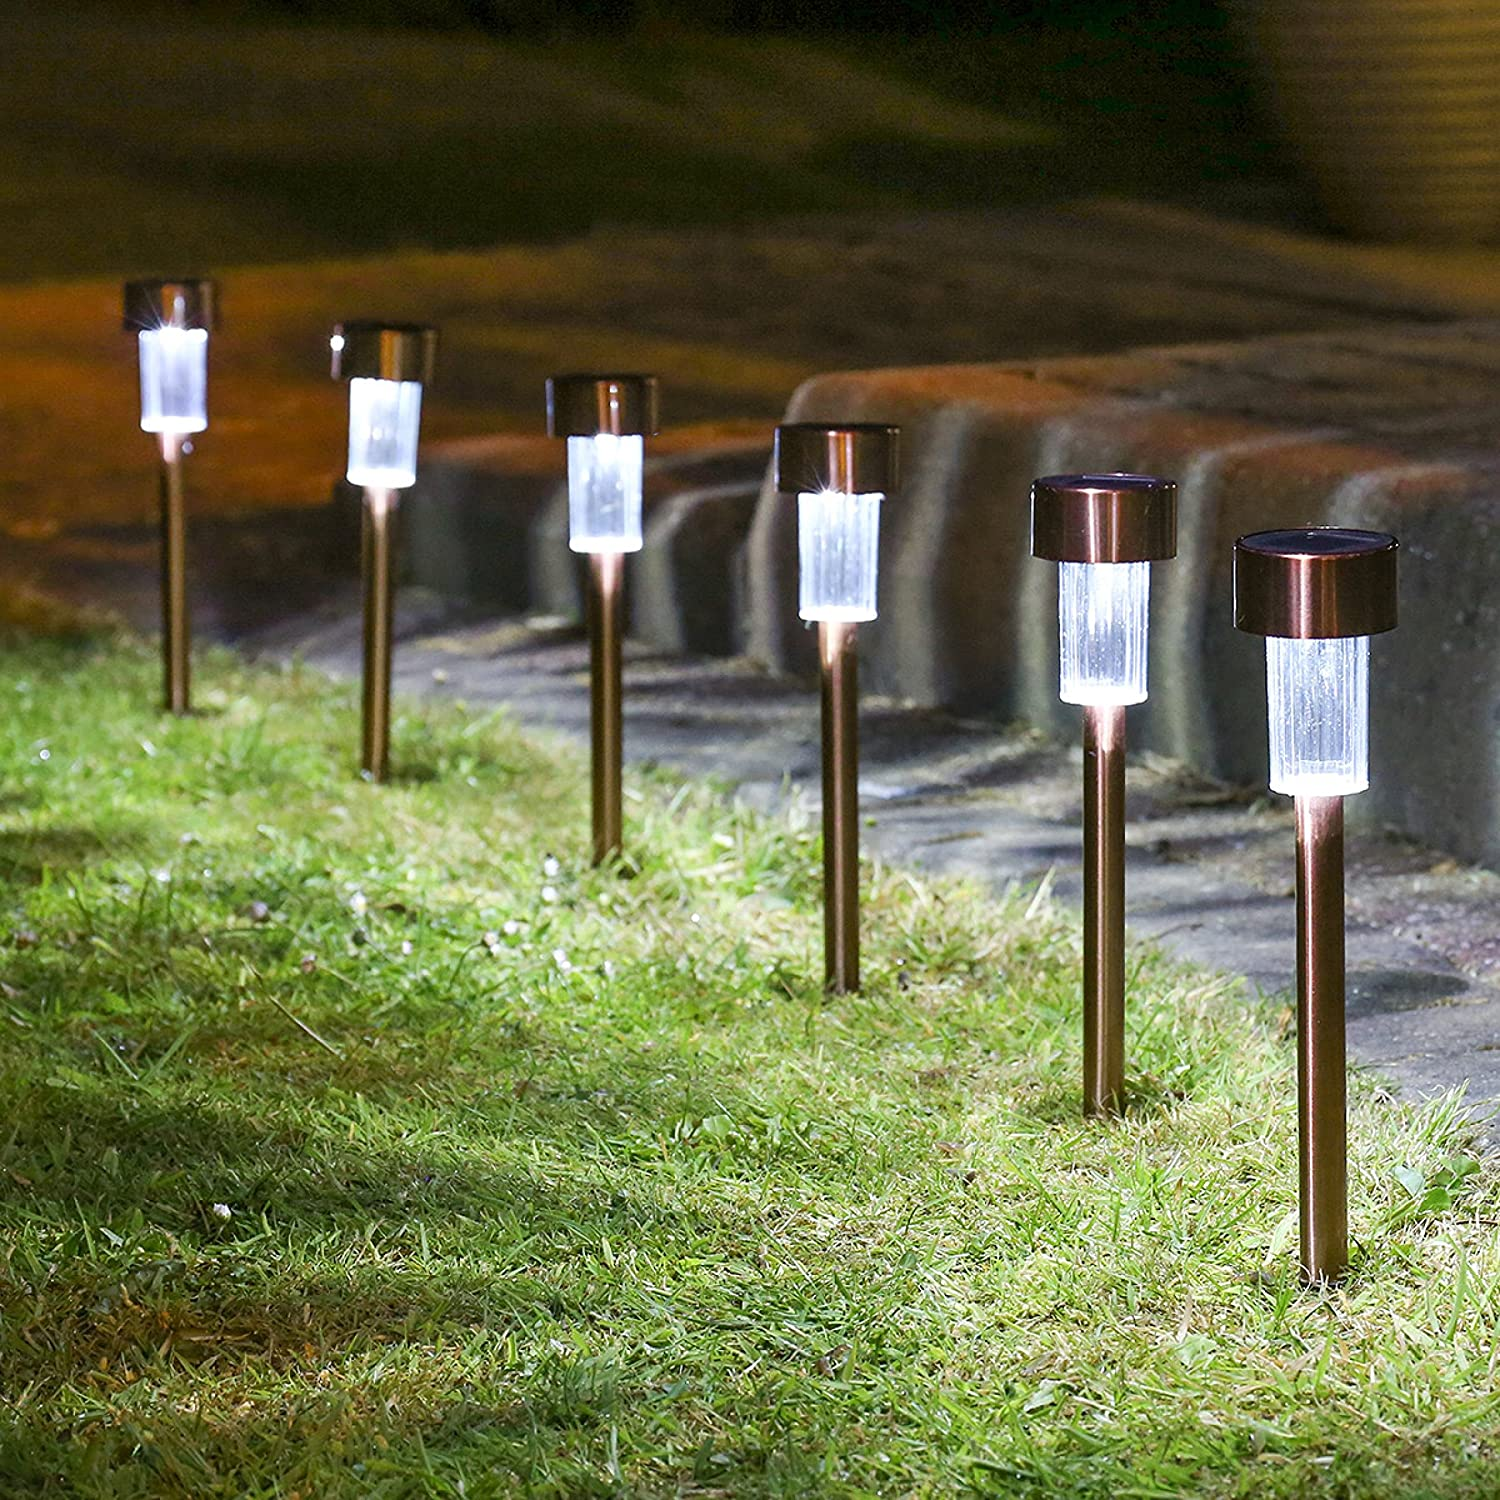 10 x STAINLESS STEEL SOLAR LIGHTS POWERED GARDEN POST PATH LED LAWN PATIO  eBay